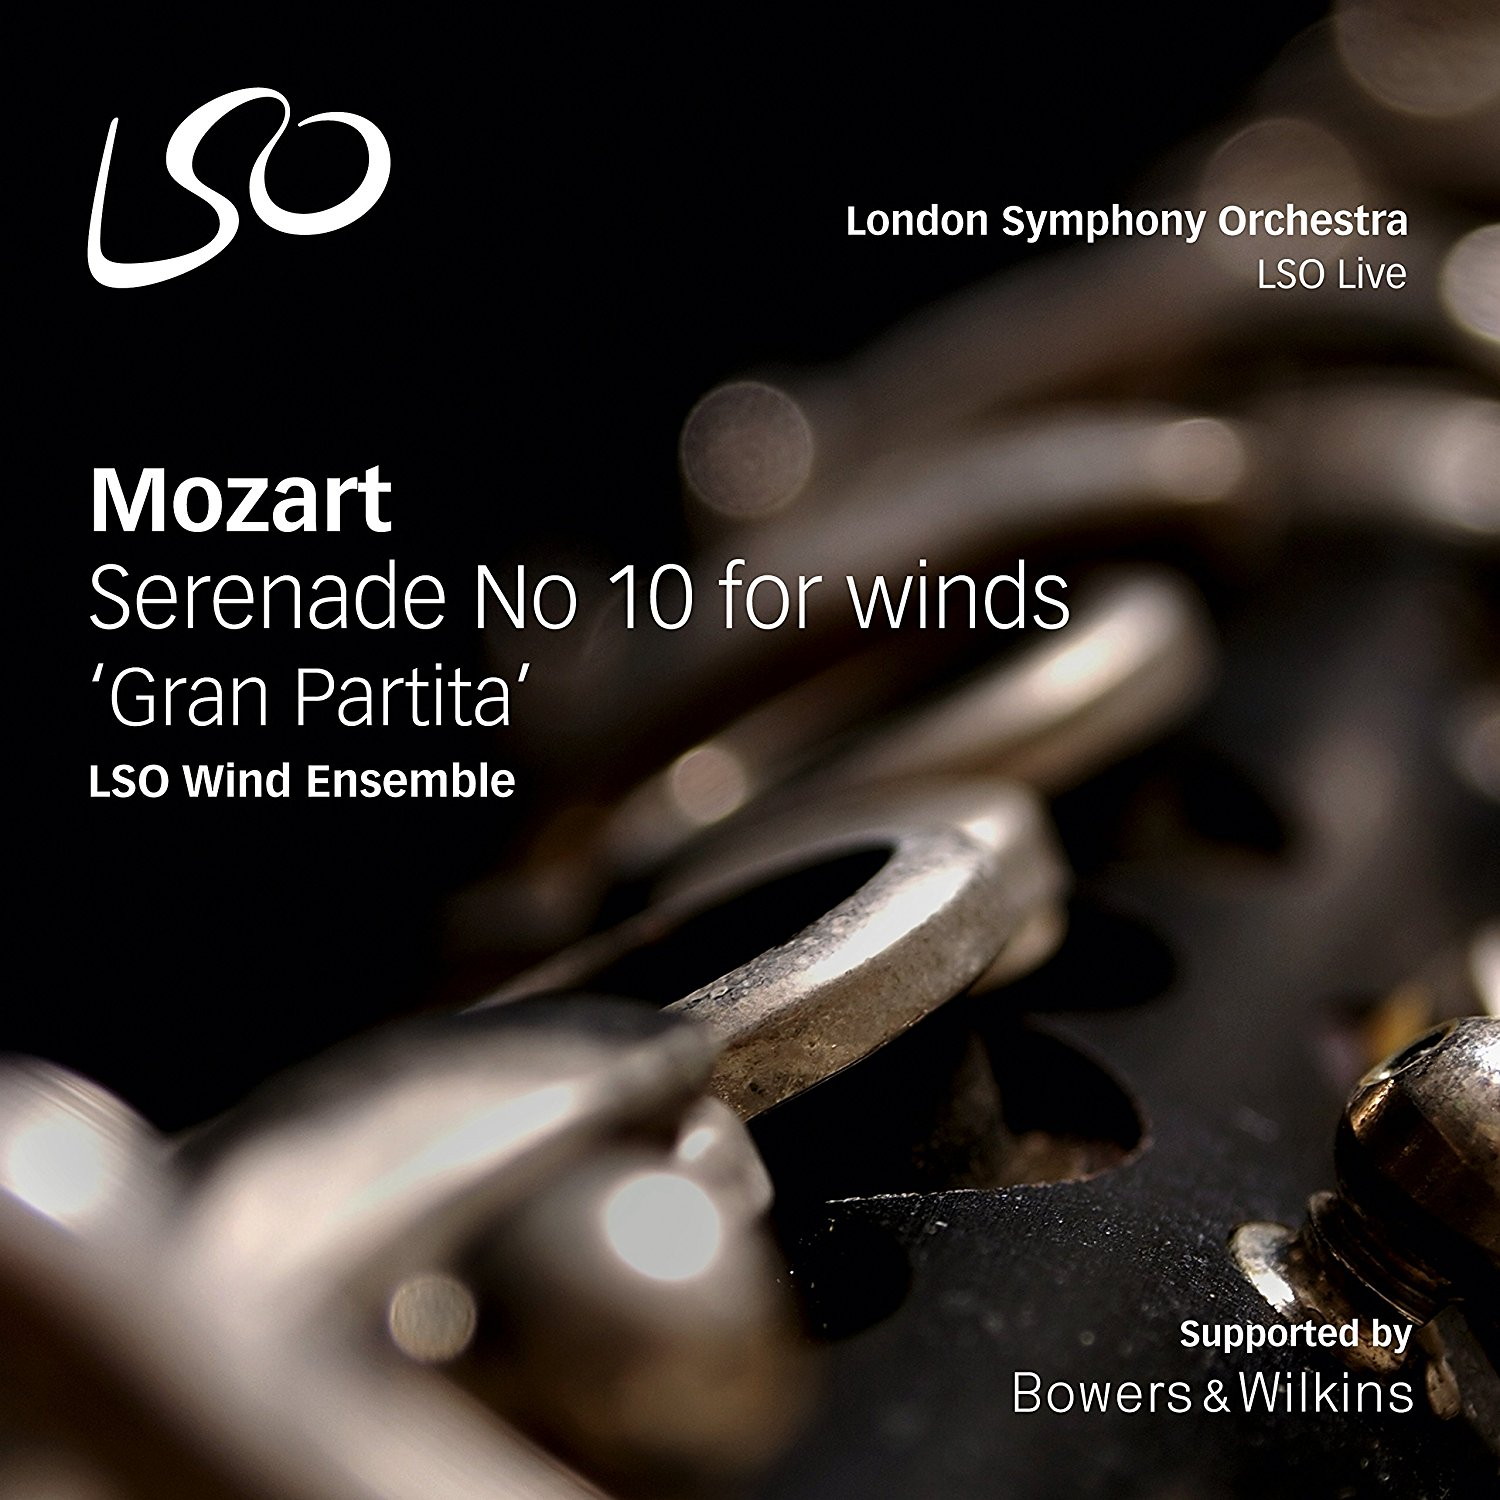 Mozart - LSO